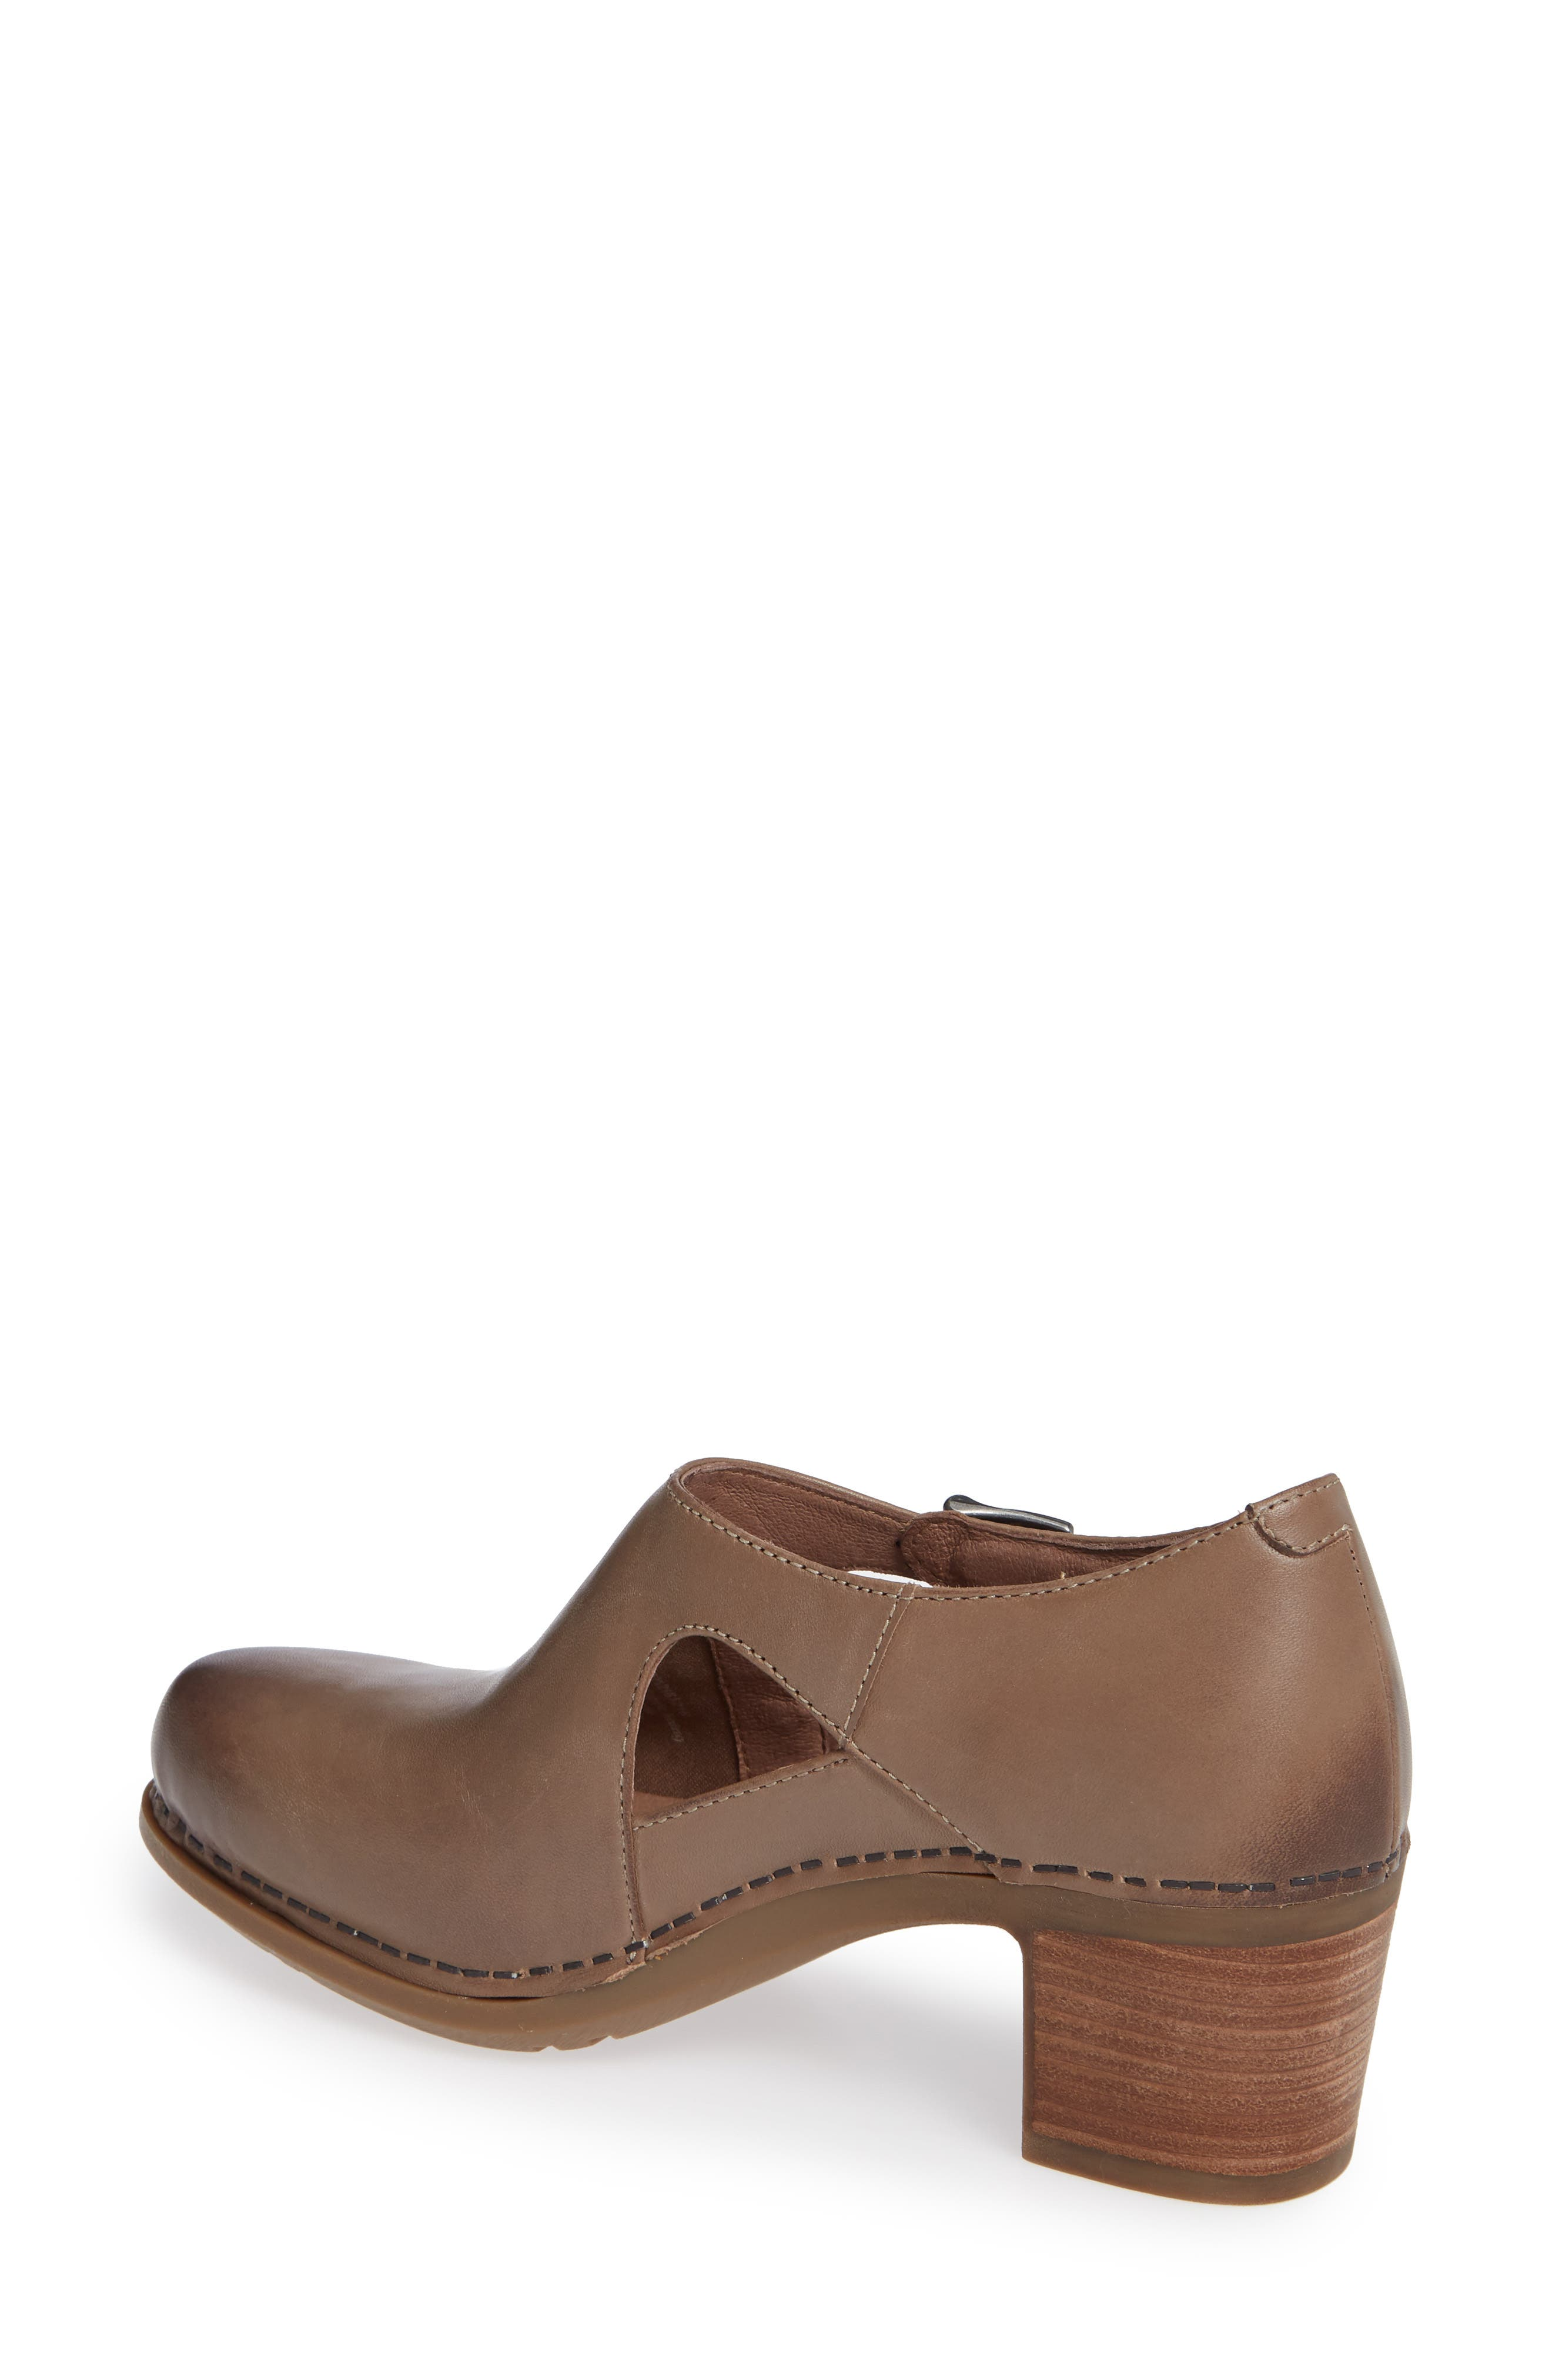 Hollie Bootie,                             Alternate thumbnail 2, color,                             TAUPE BURNISHED LEATHER